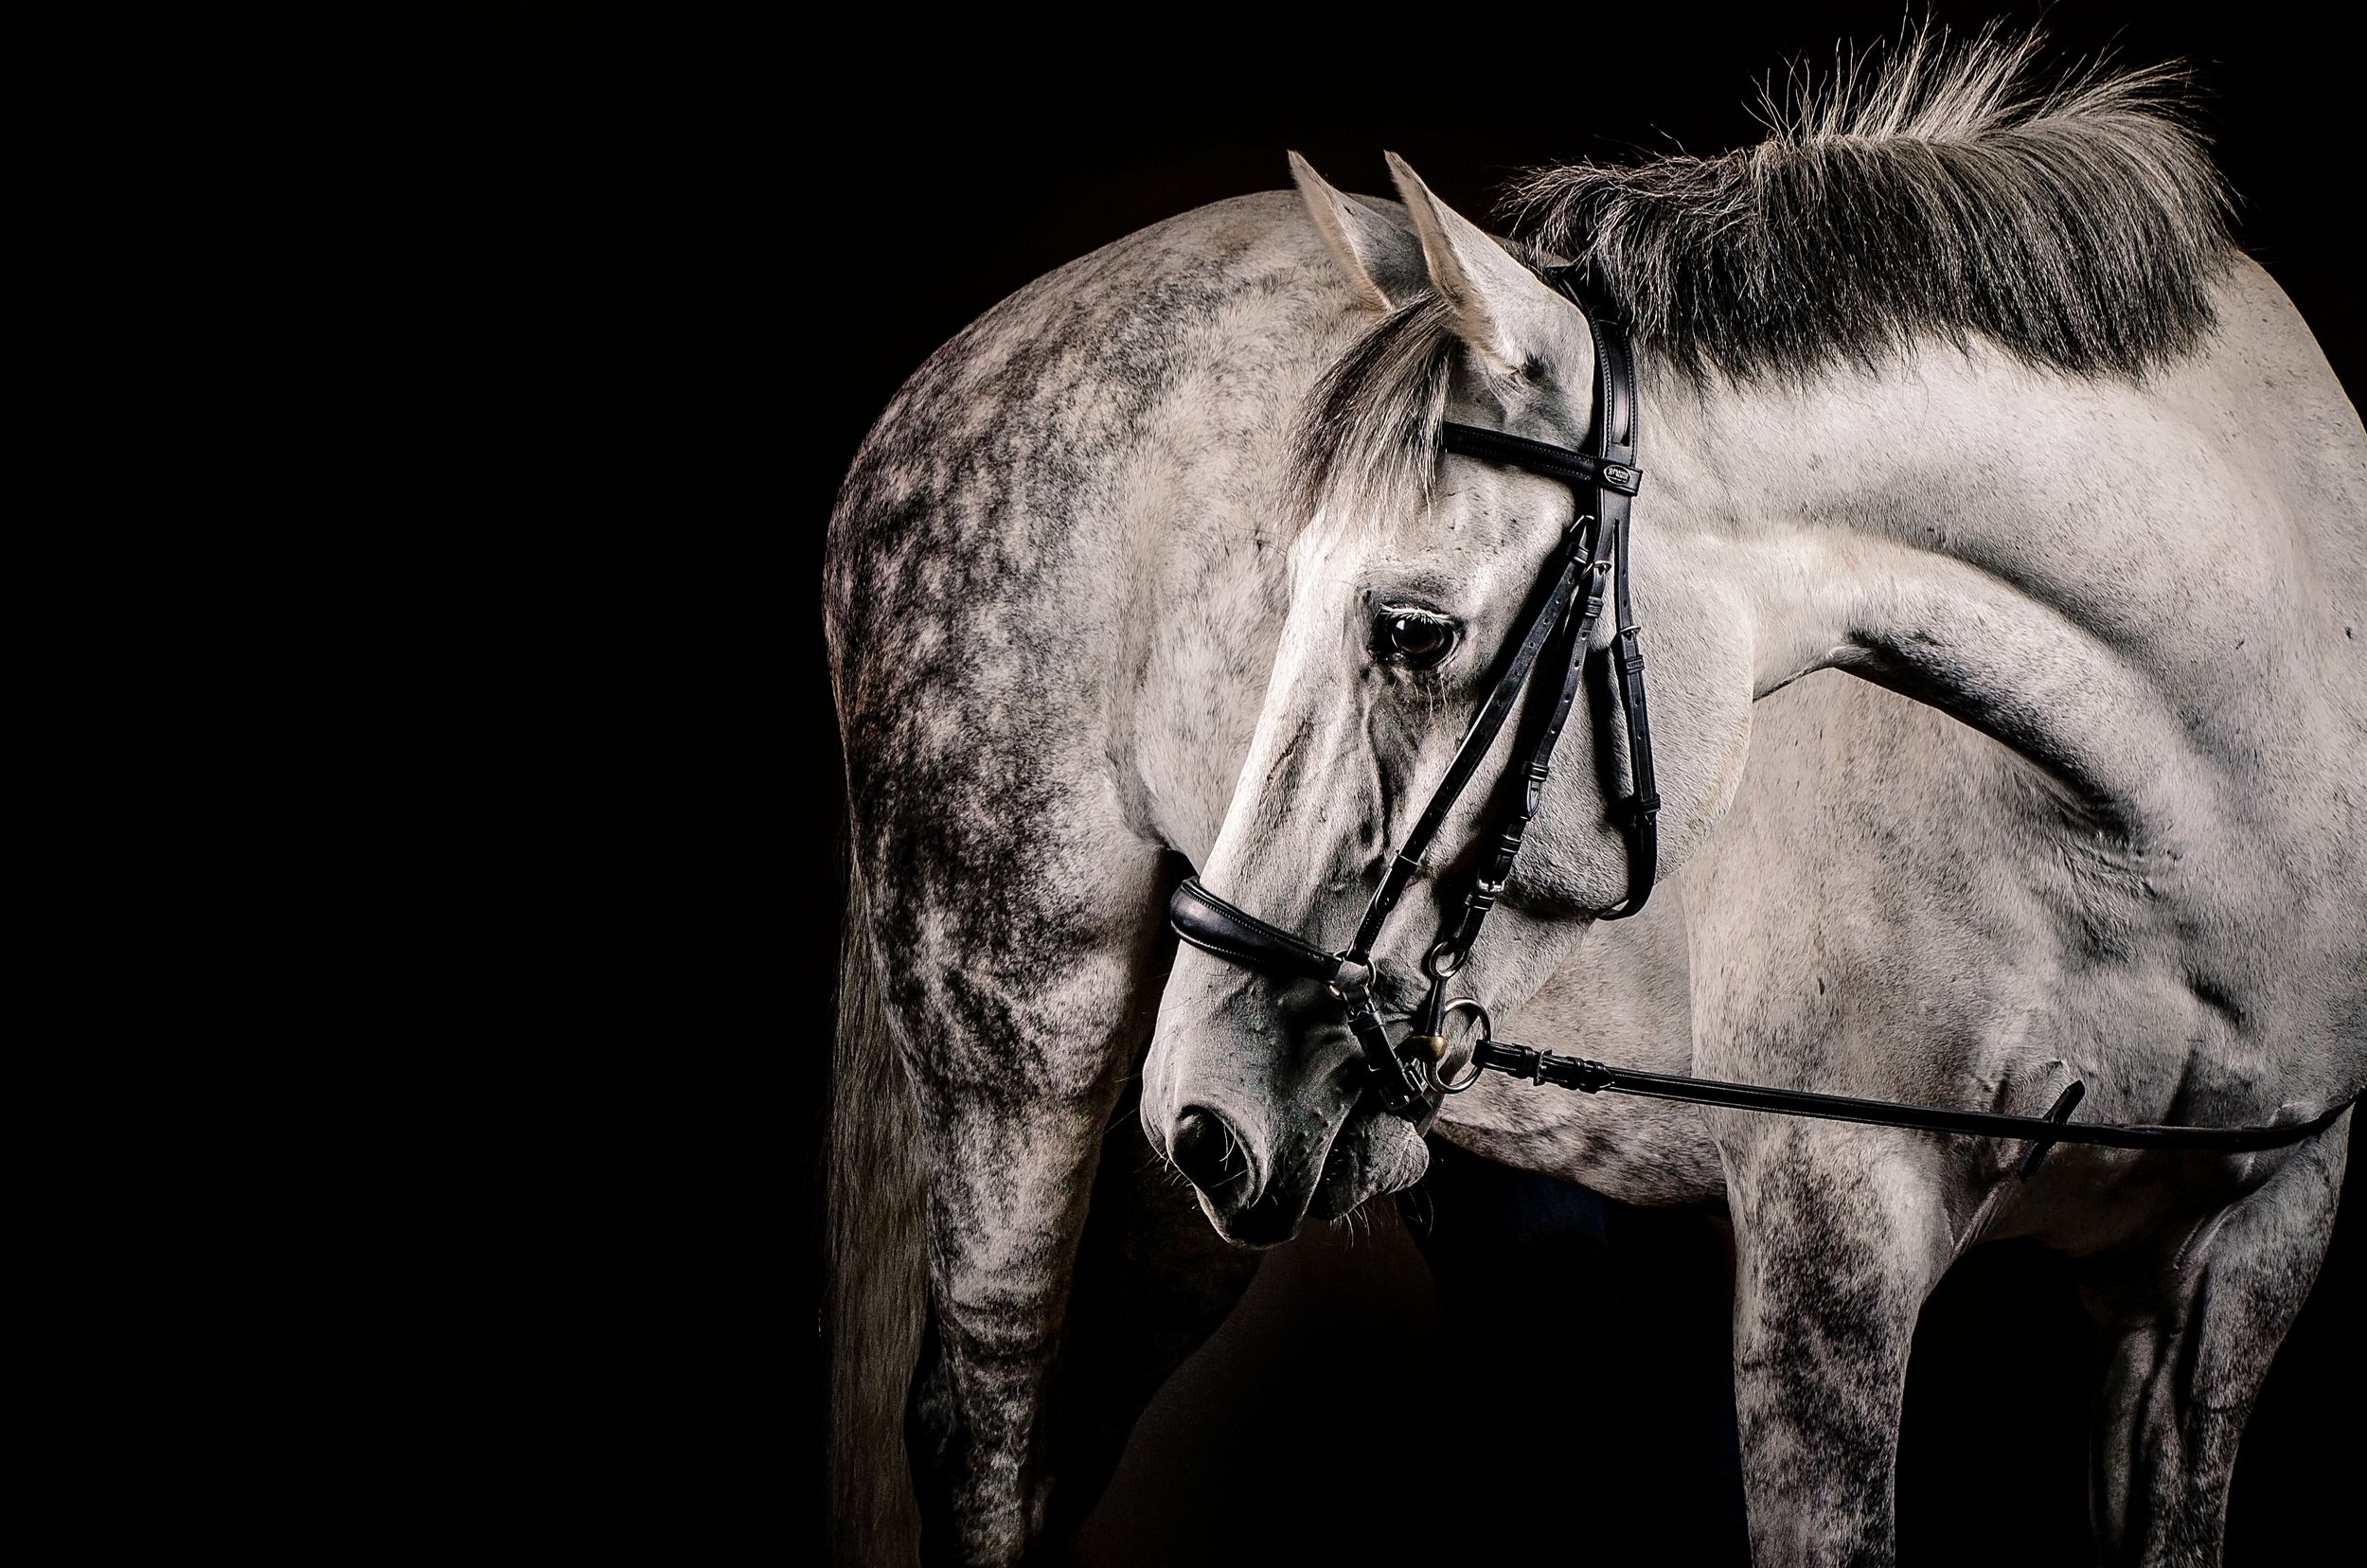 Andalusian gelding horse in studio portrait with black background